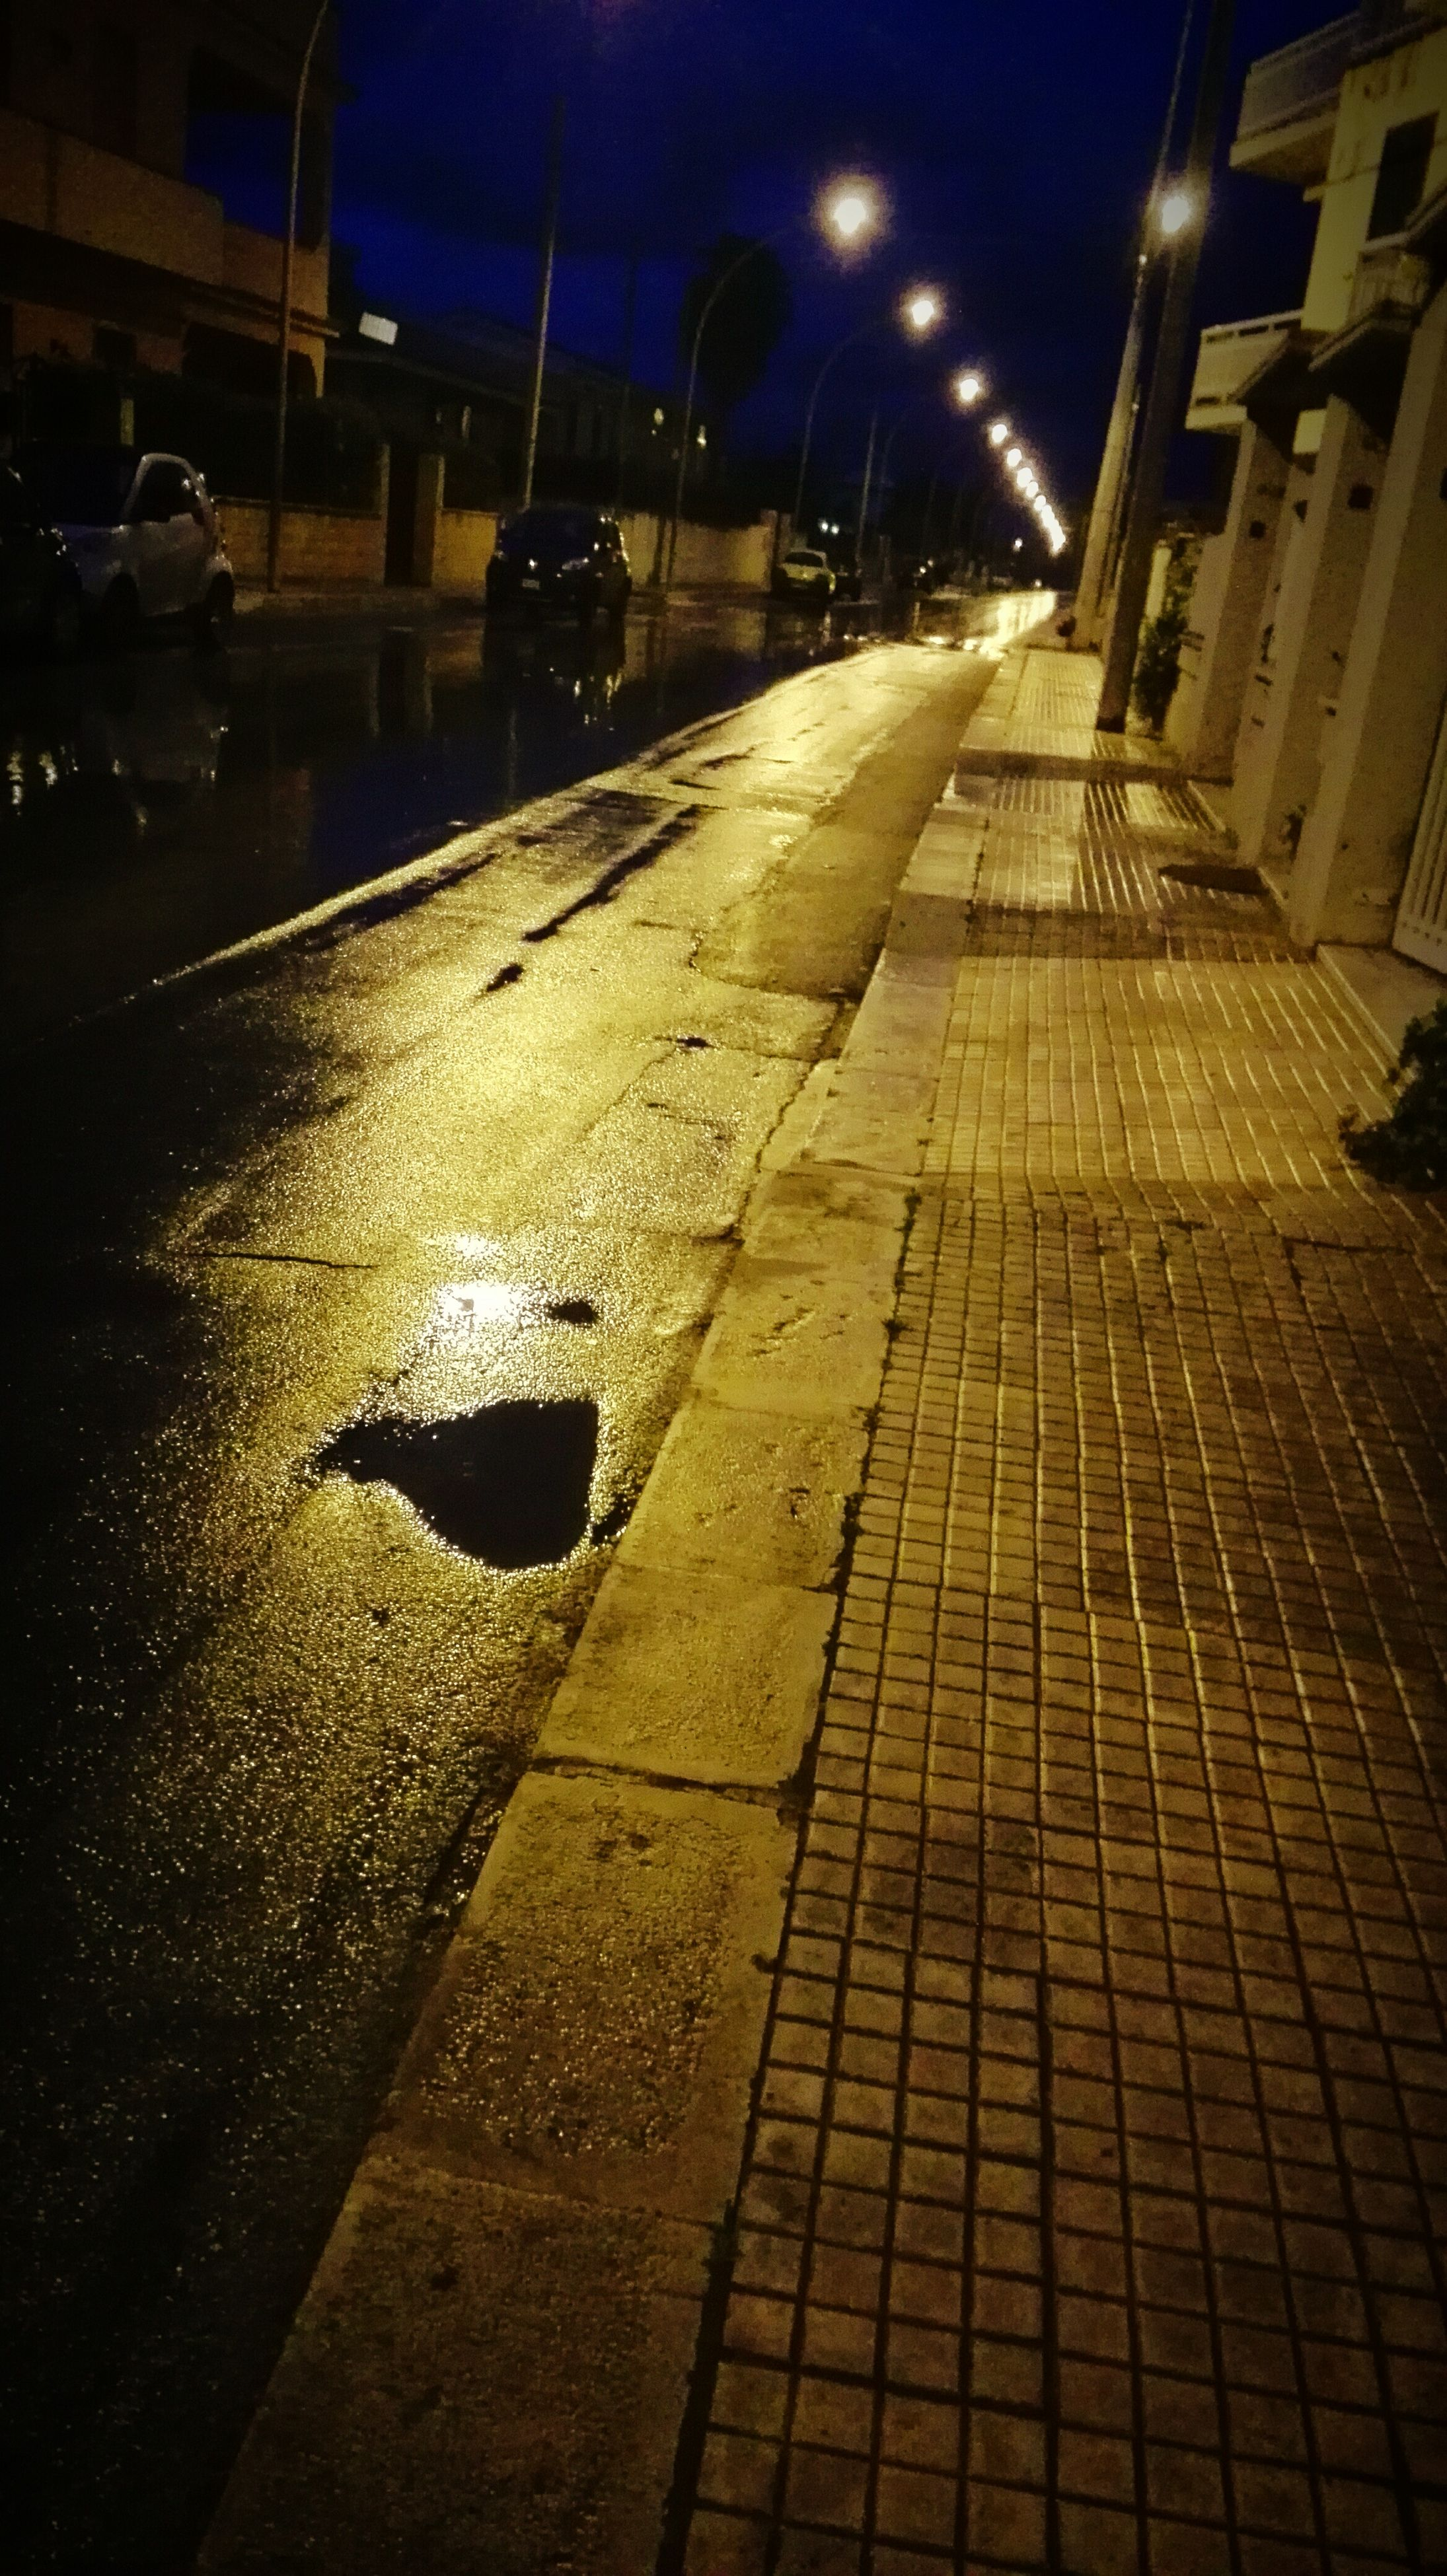 night, architecture, illuminated, building exterior, built structure, street, city, the way forward, road, street light, building, outdoors, shadow, lighting equipment, cobblestone, puddle, no people, city street, road marking, light - natural phenomenon